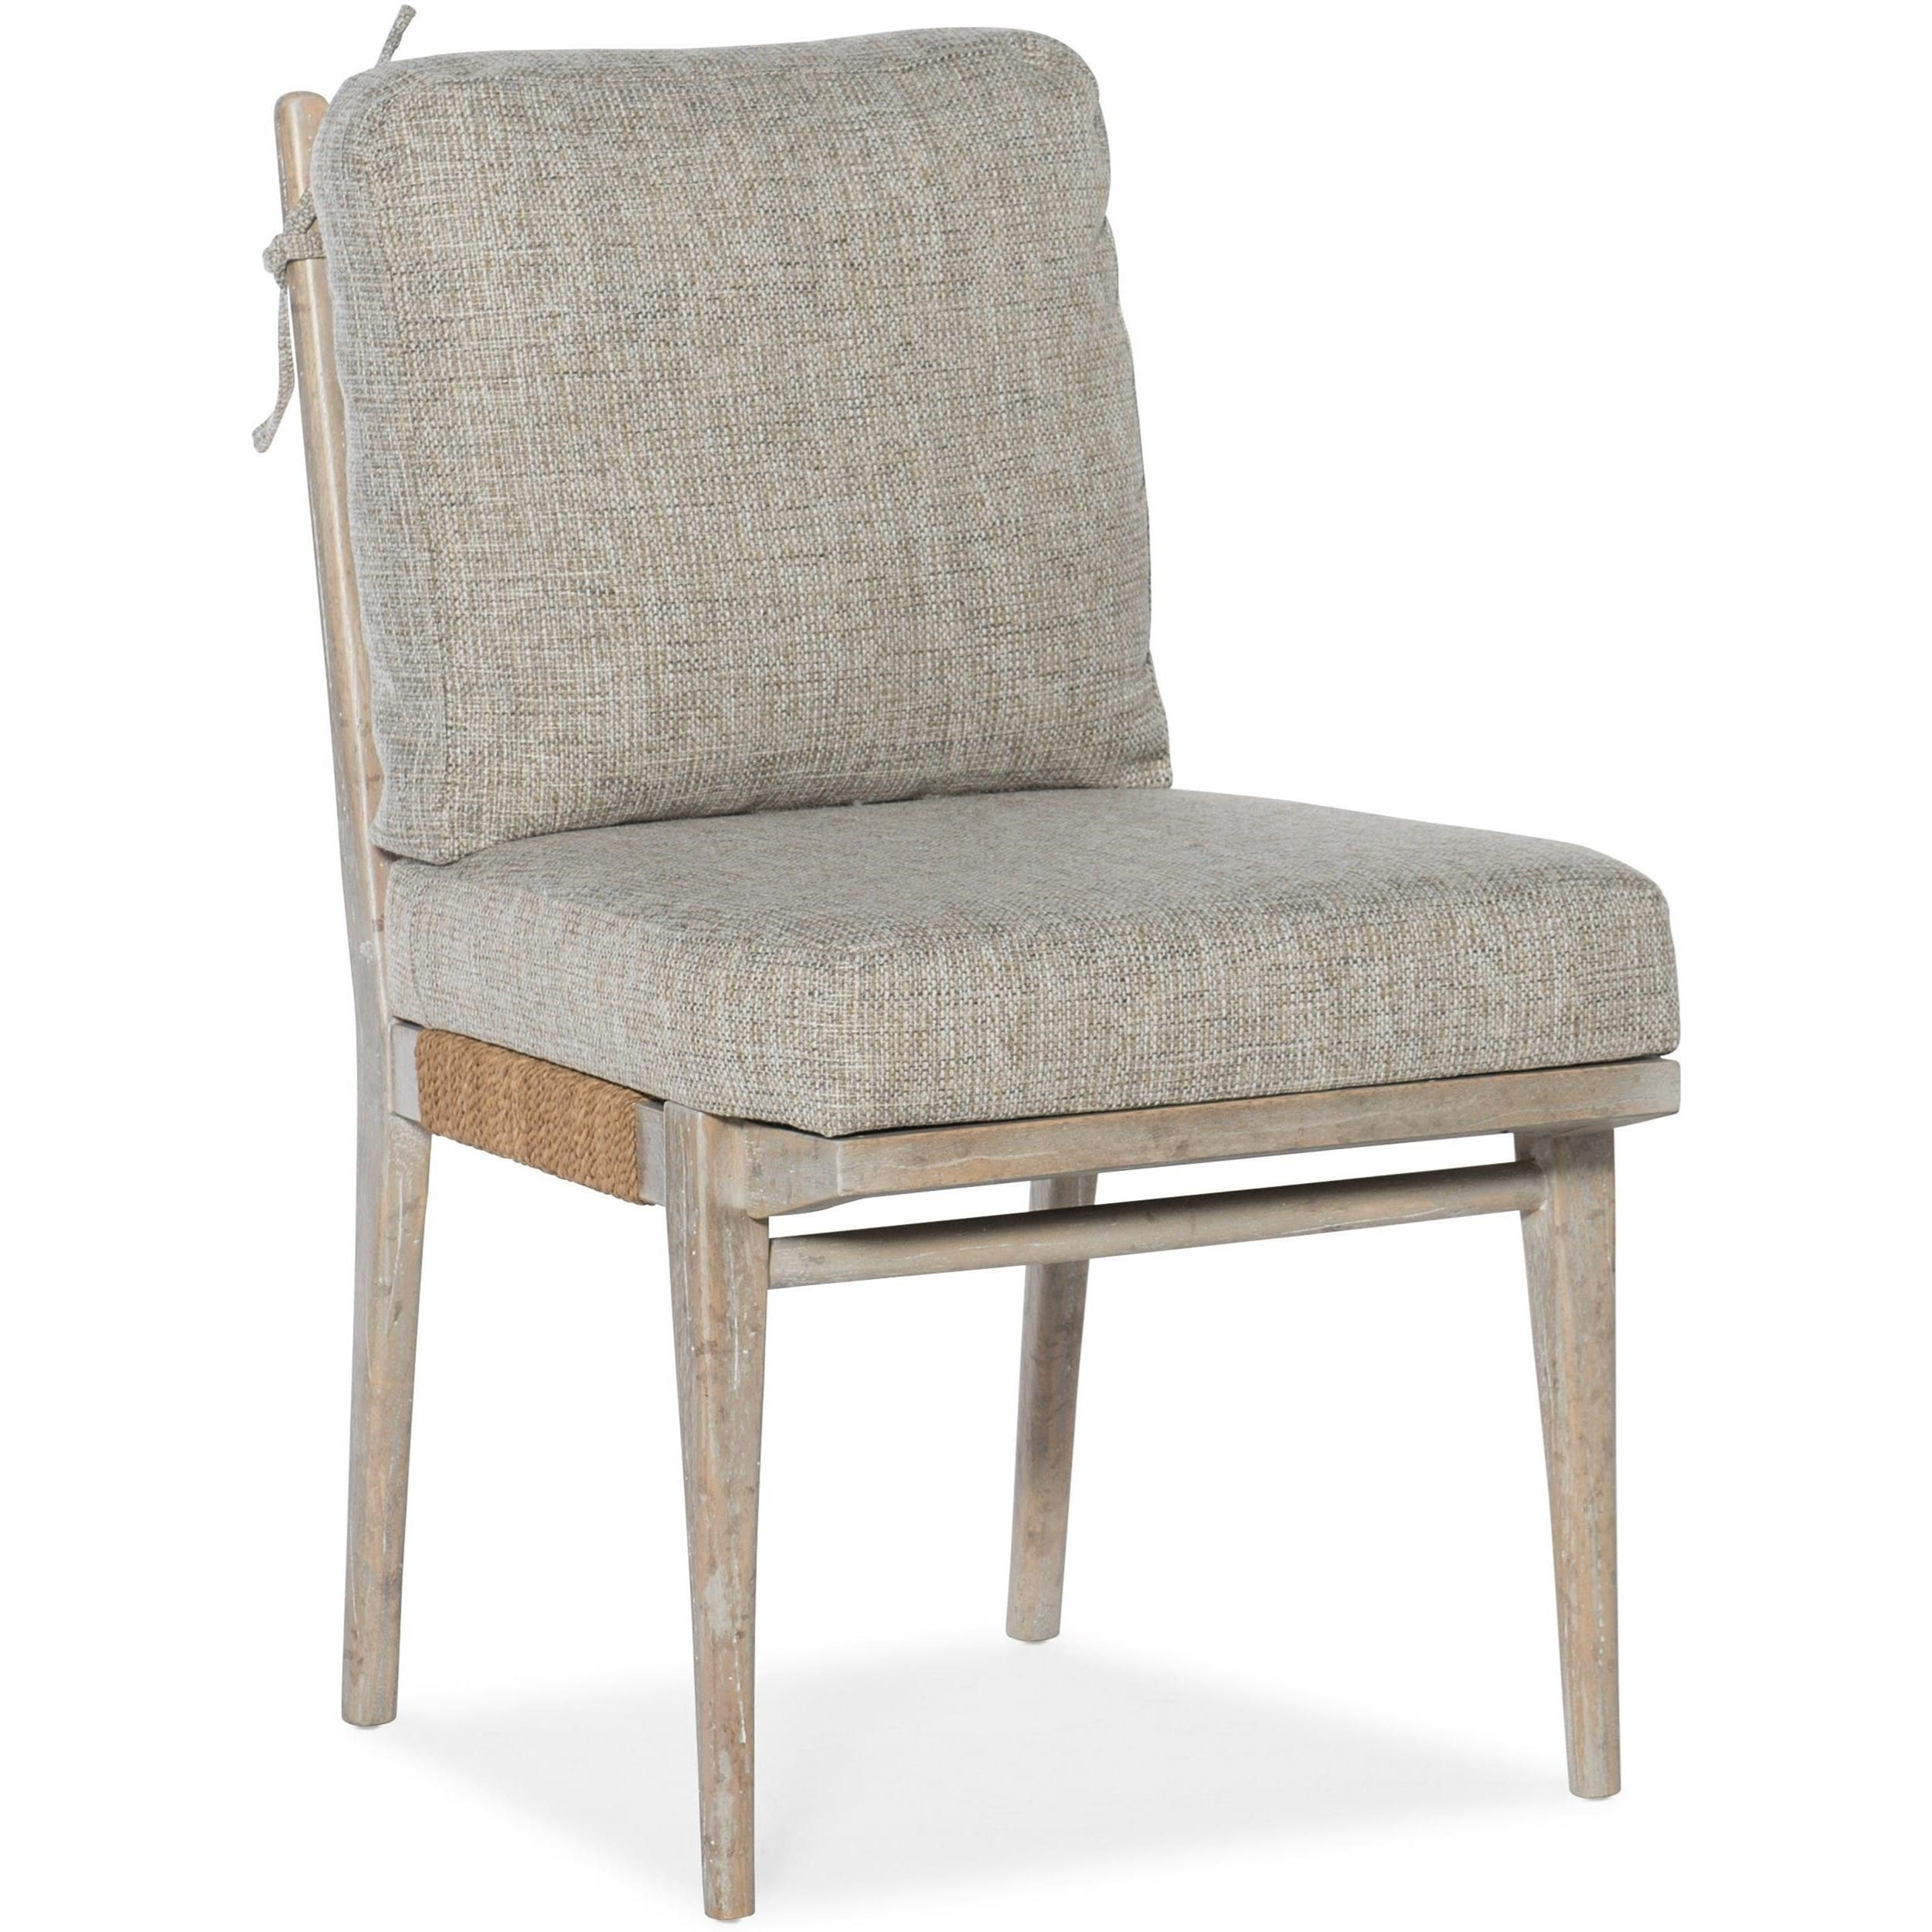 American Life-Amani Upholstered Side Chair by Hooker Furniture at Fisher Home Furnishings